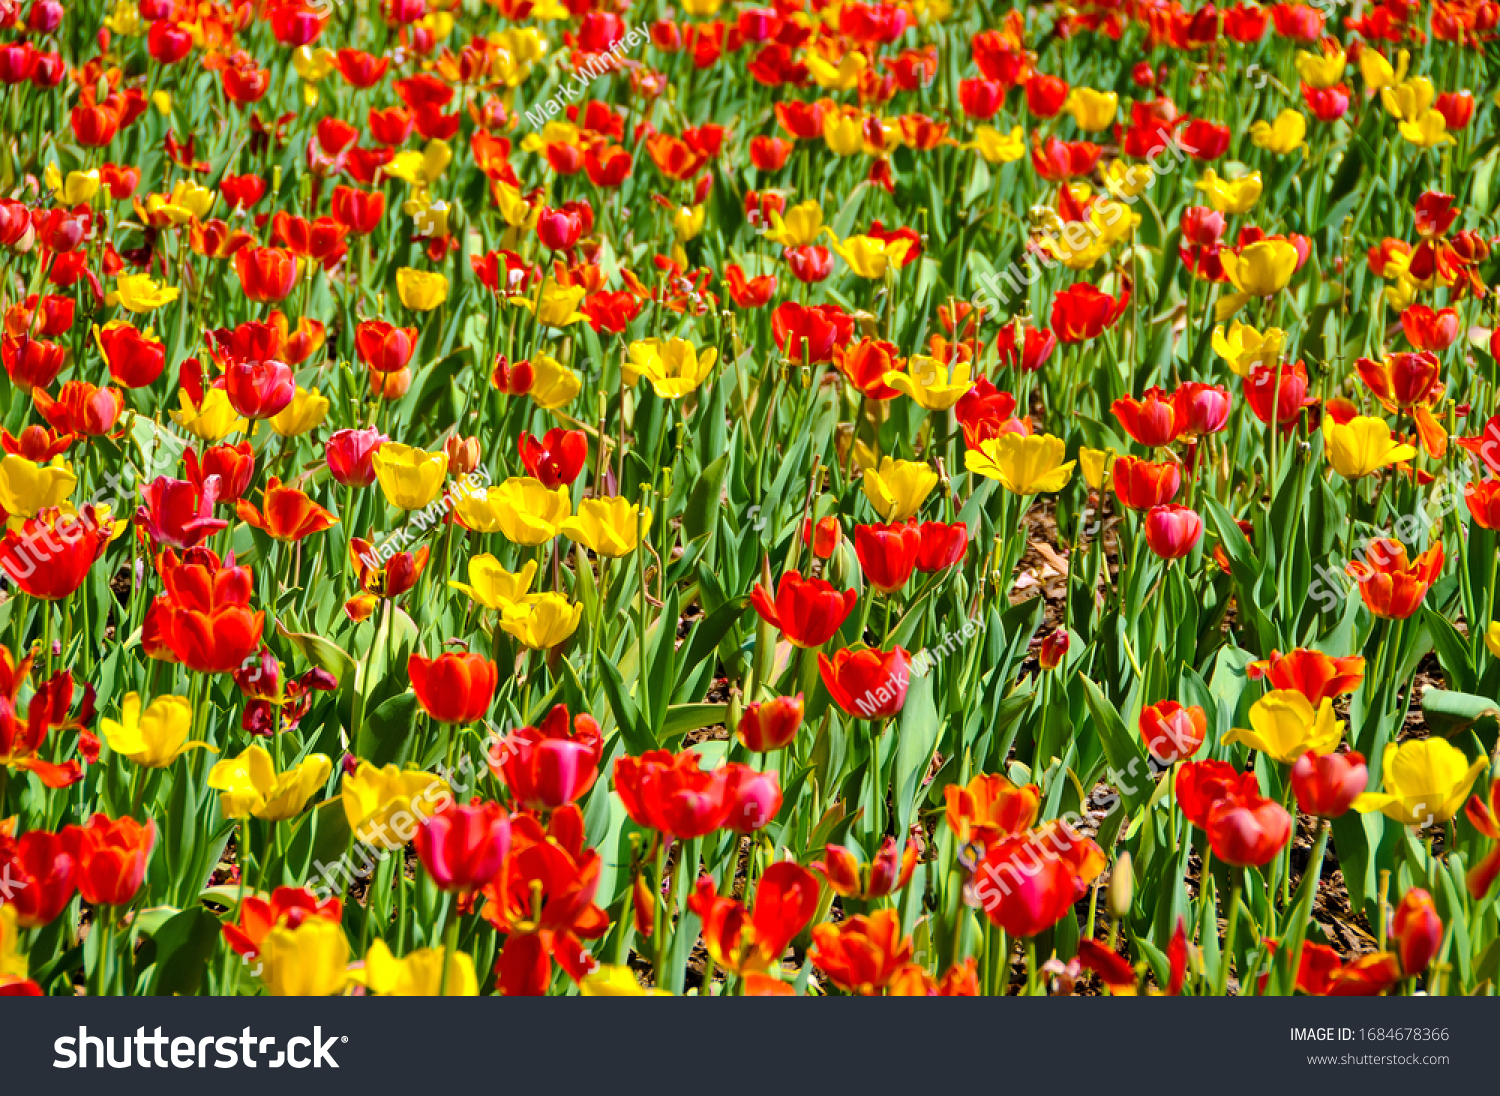 A Field Full of Beautiful Tulips in Spring